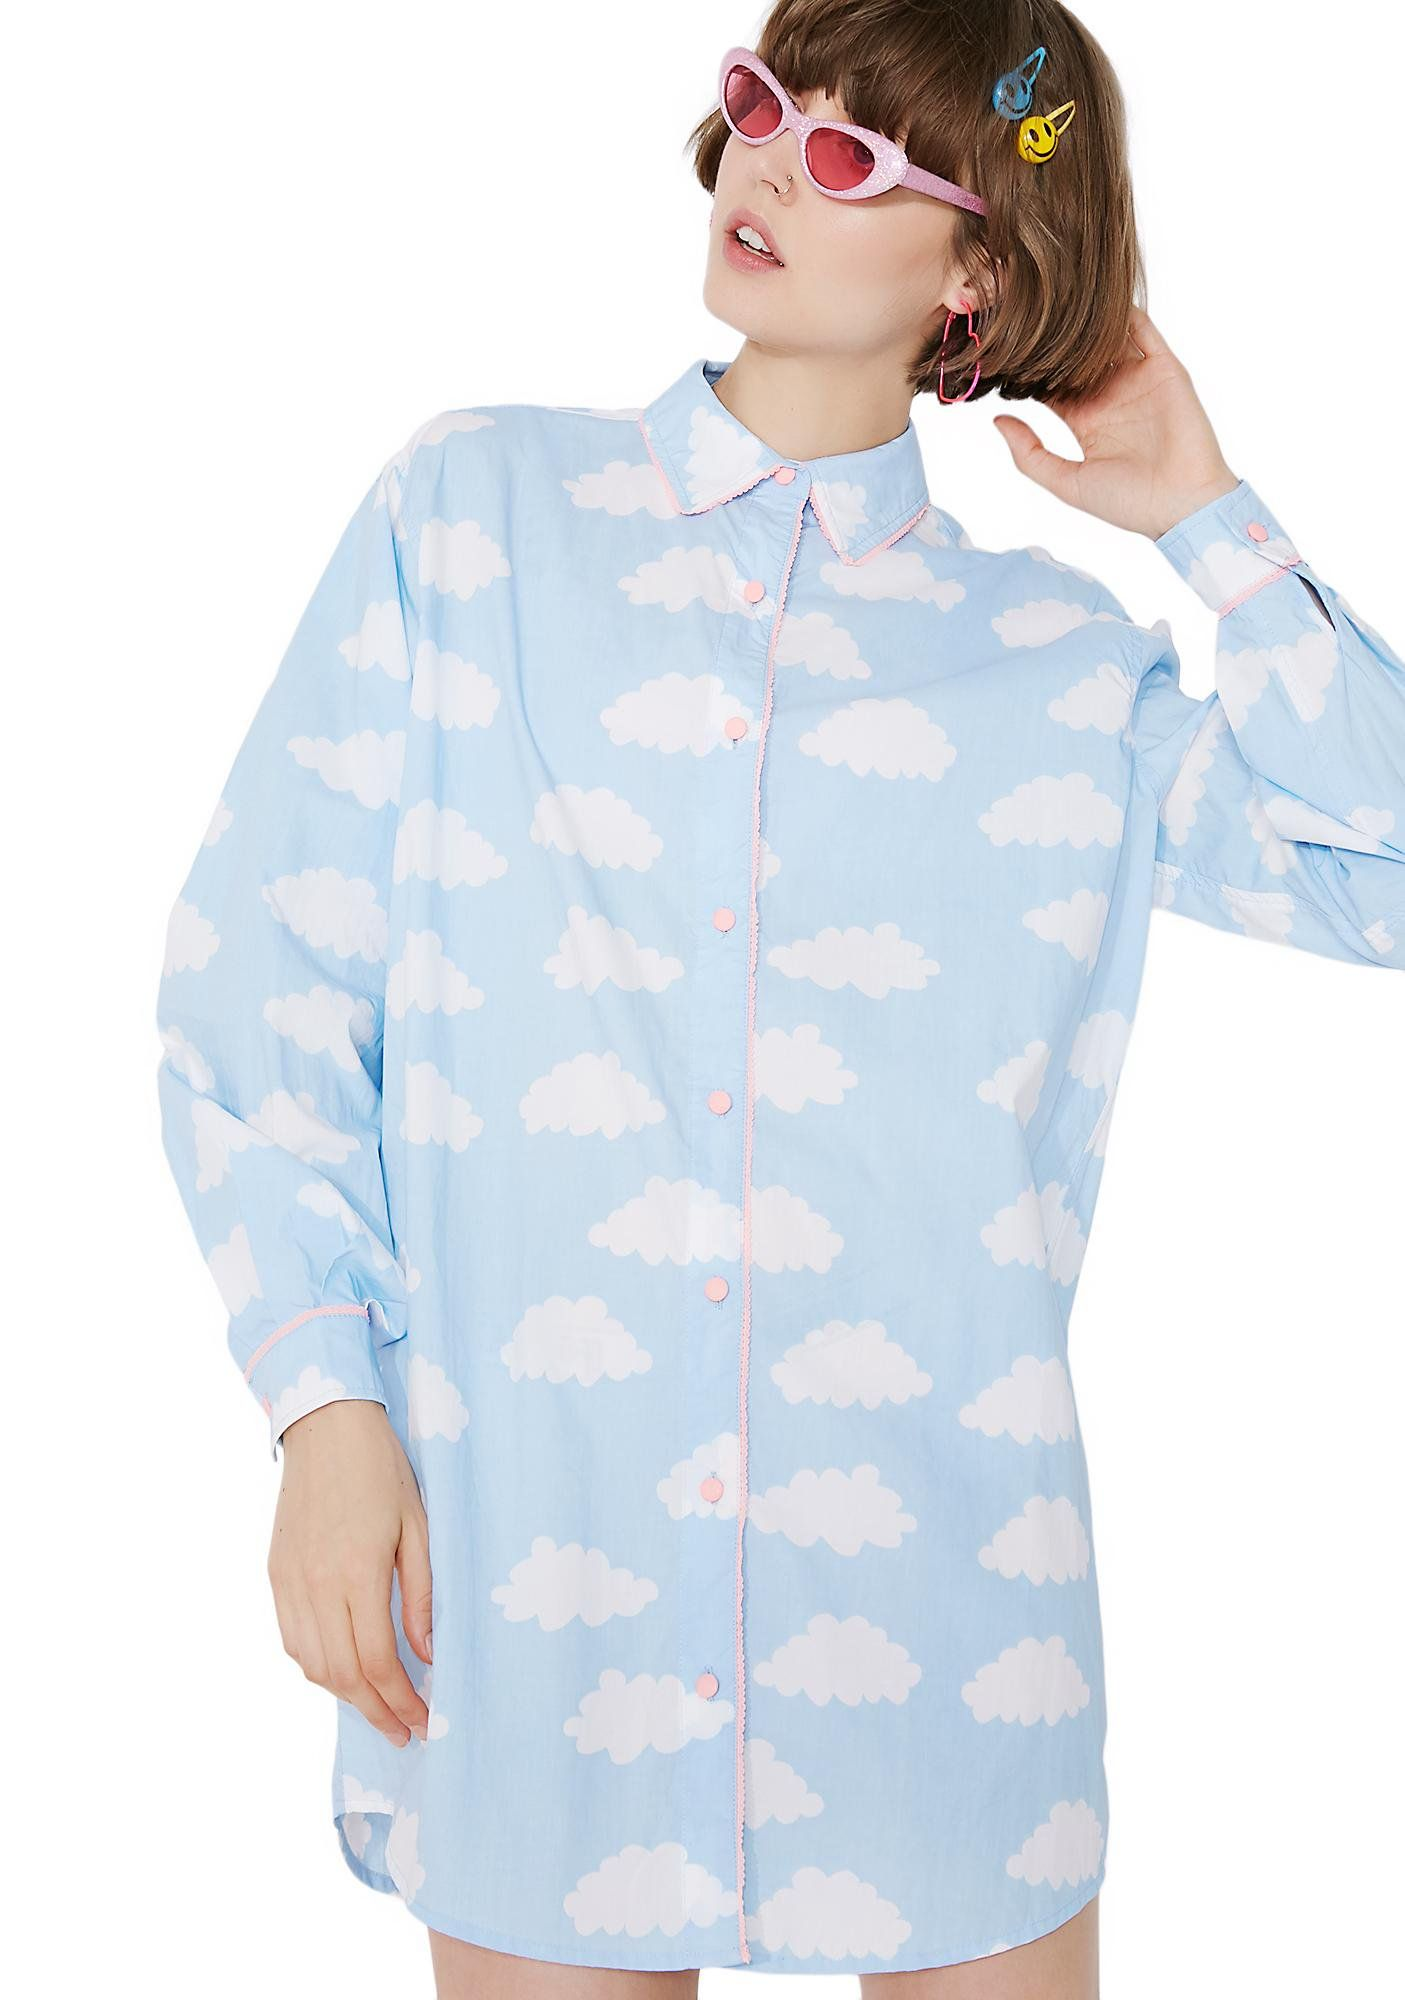 a6b5ee45 Lazy Oaf Sometimes Cloudy Shirt a lil rain doesn't scare ya. Stay sunny in  this cute af button up shirt that has pink scalloped trim and a blue N'  white ...